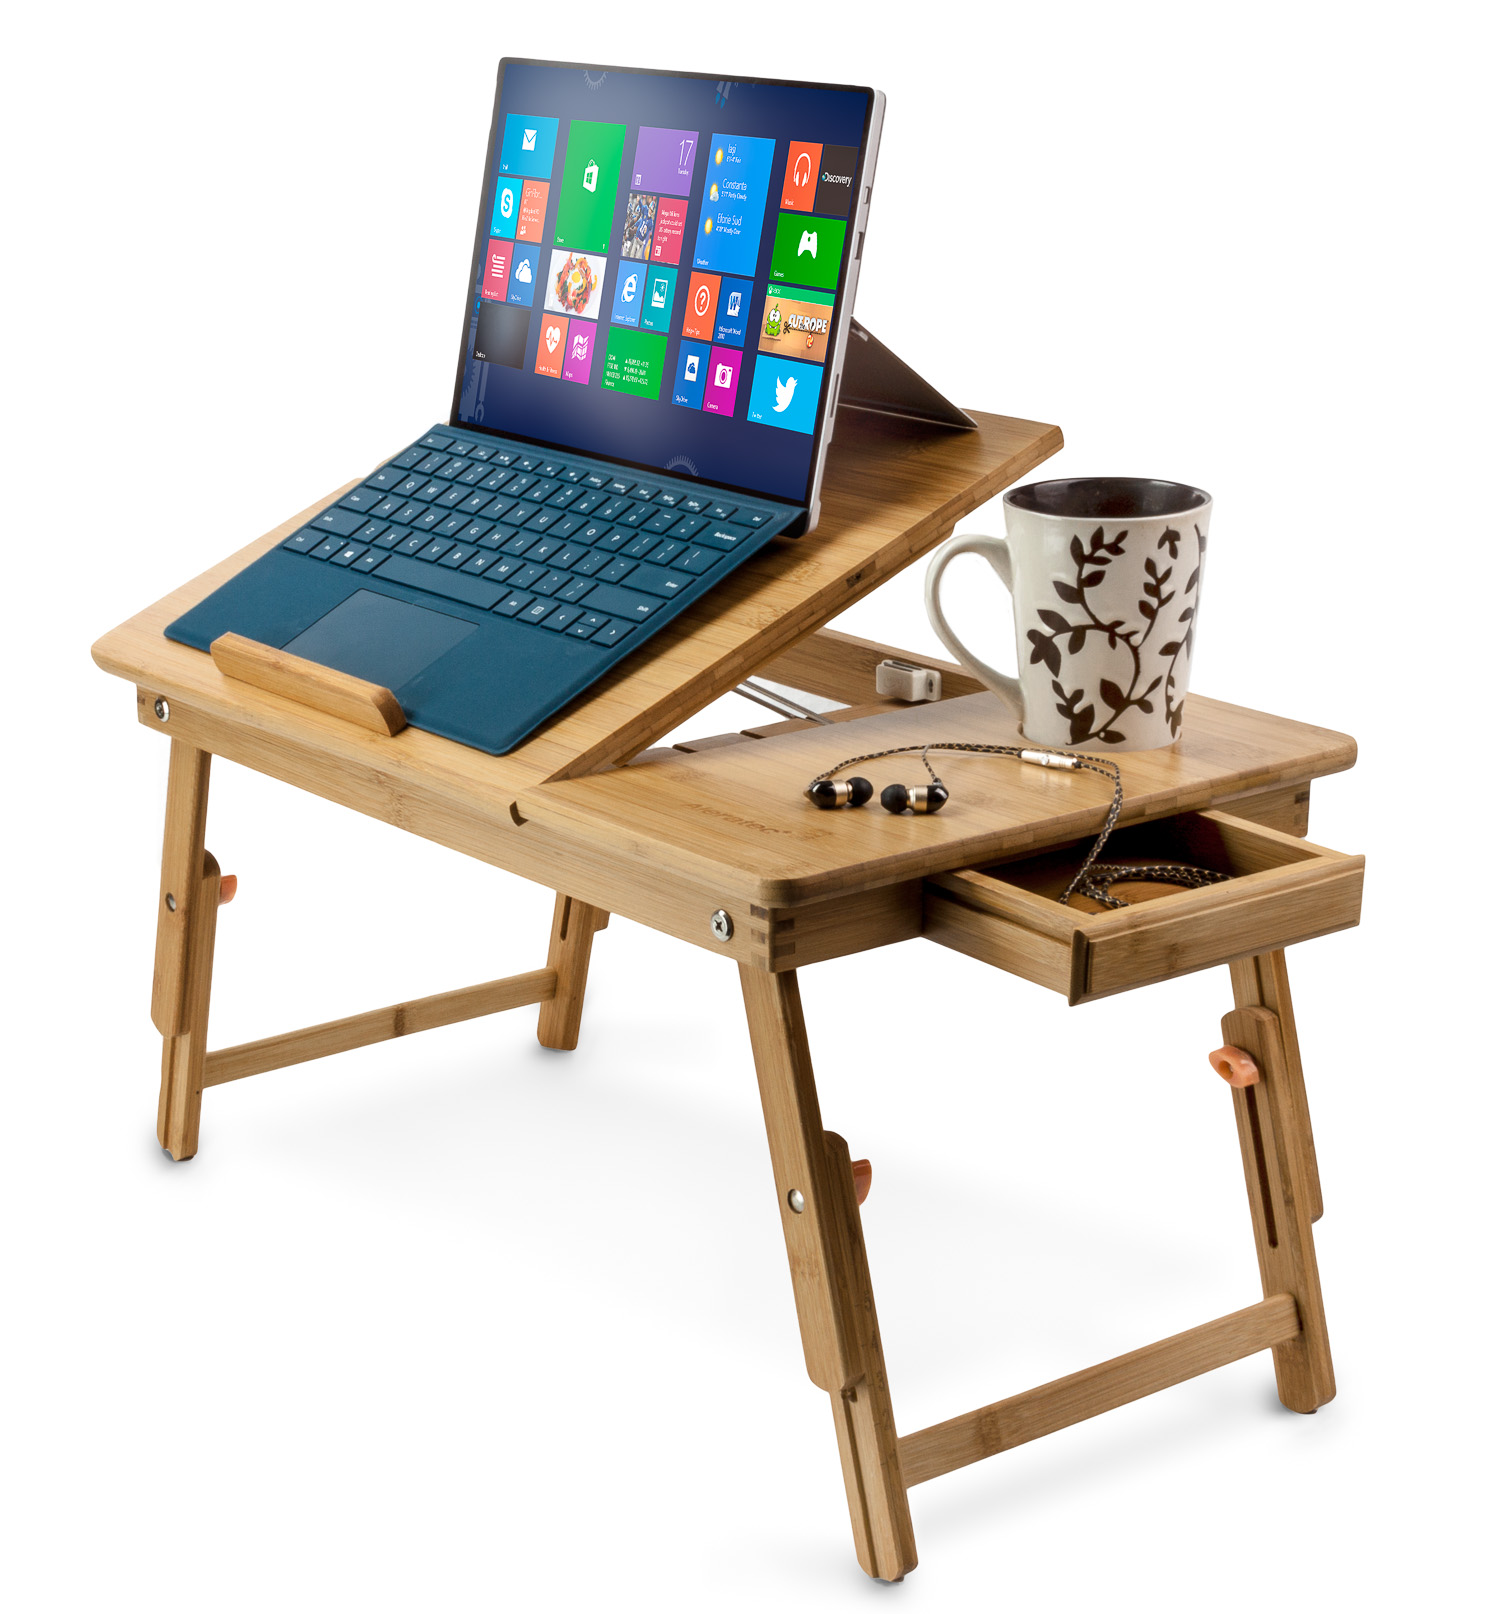 Aleratec Bamboo Lap Desk   Laptop Stand for Devices Up to 15 Inches by Aleratec